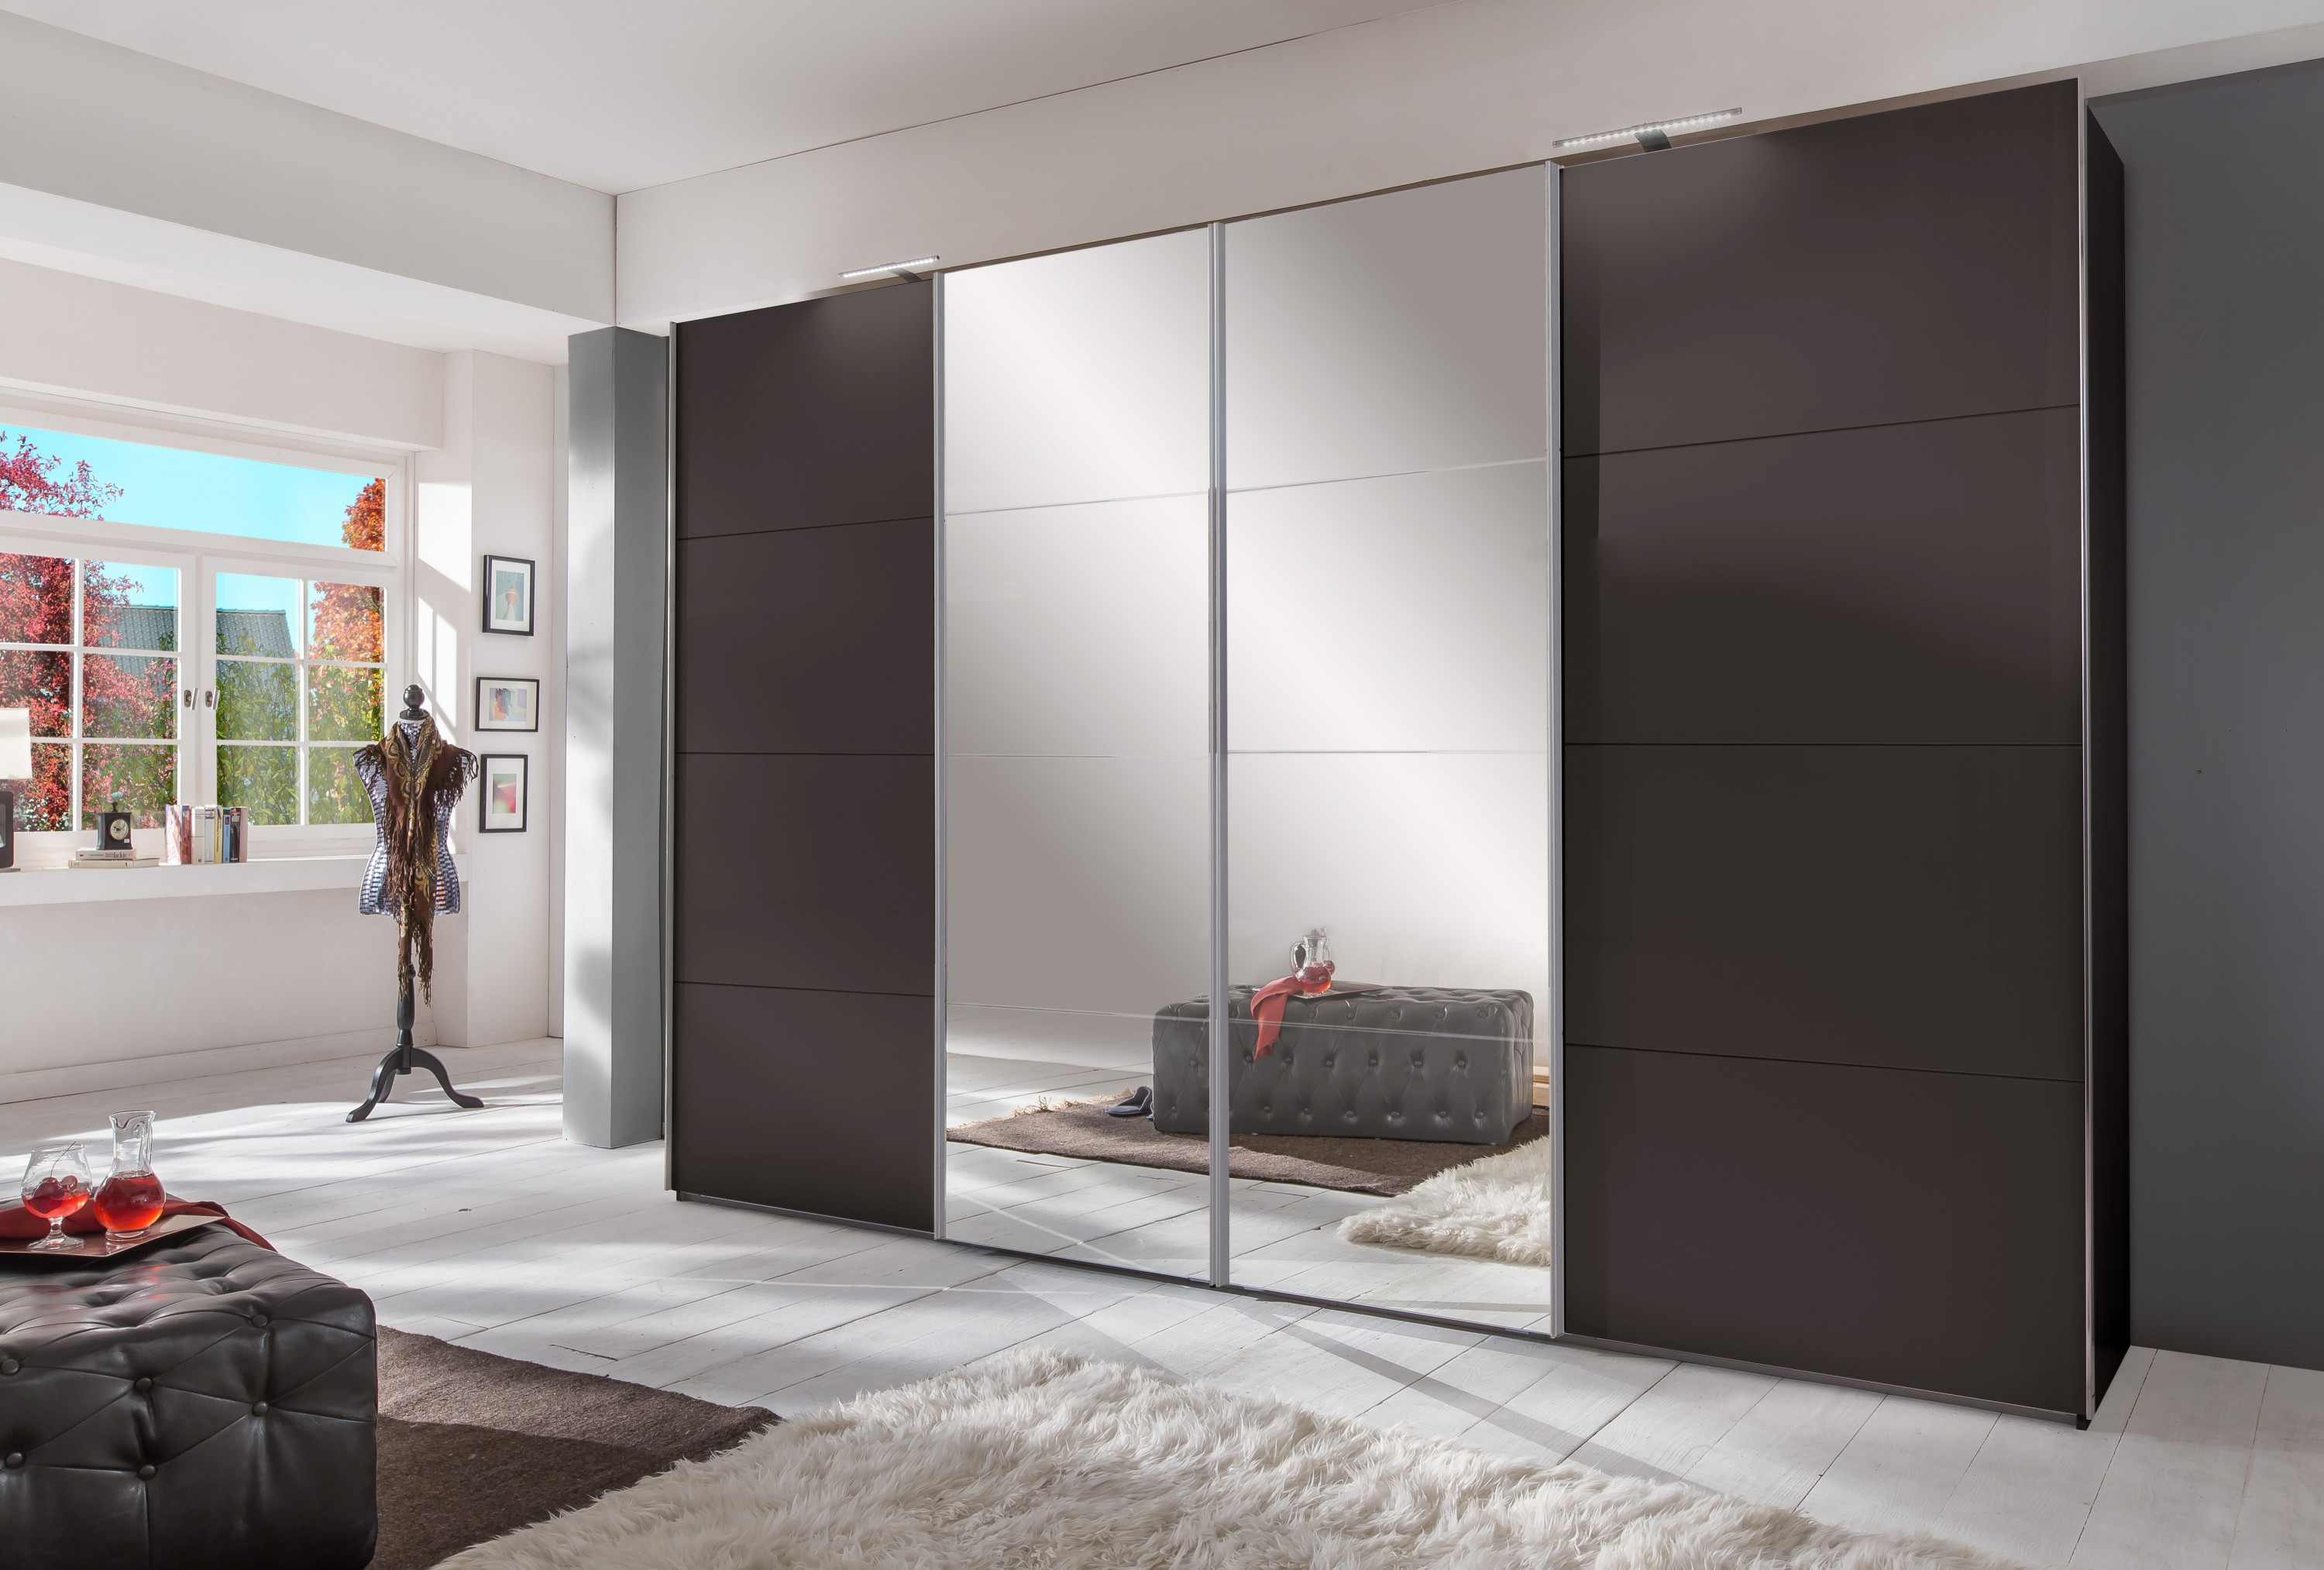 schwebet renschrank br ssel 270 cm eiche s gerau dekor alpinwei wohnwelten schlafzimmer. Black Bedroom Furniture Sets. Home Design Ideas